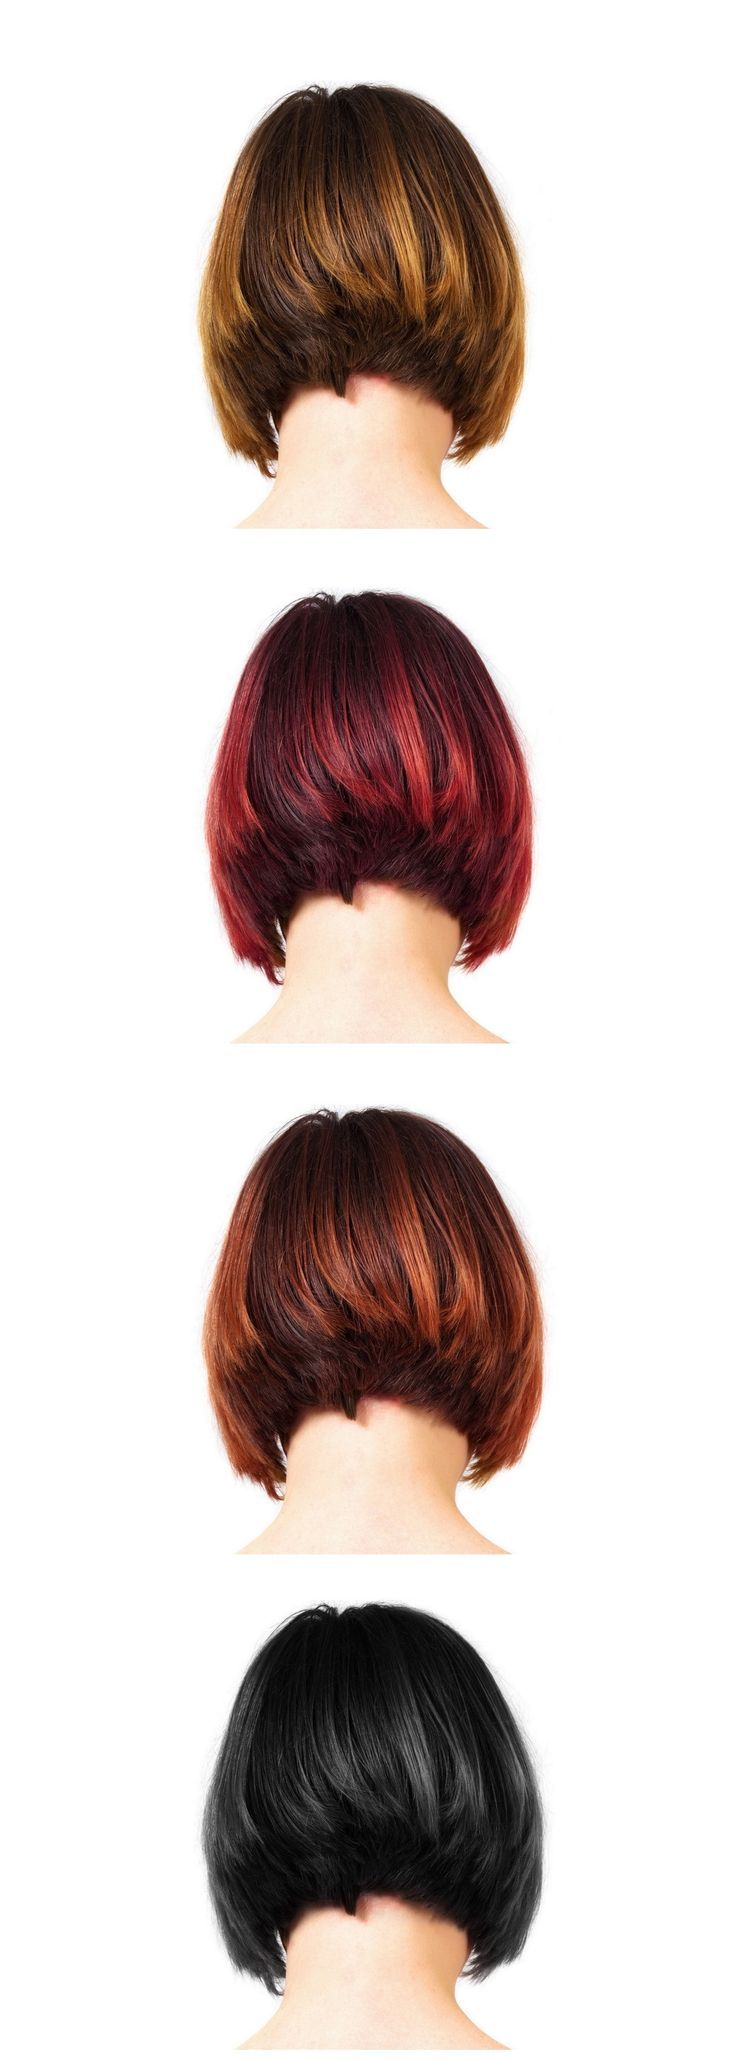 Best 25+ Loreal hicolor red ideas on Pinterest | Loreal ...